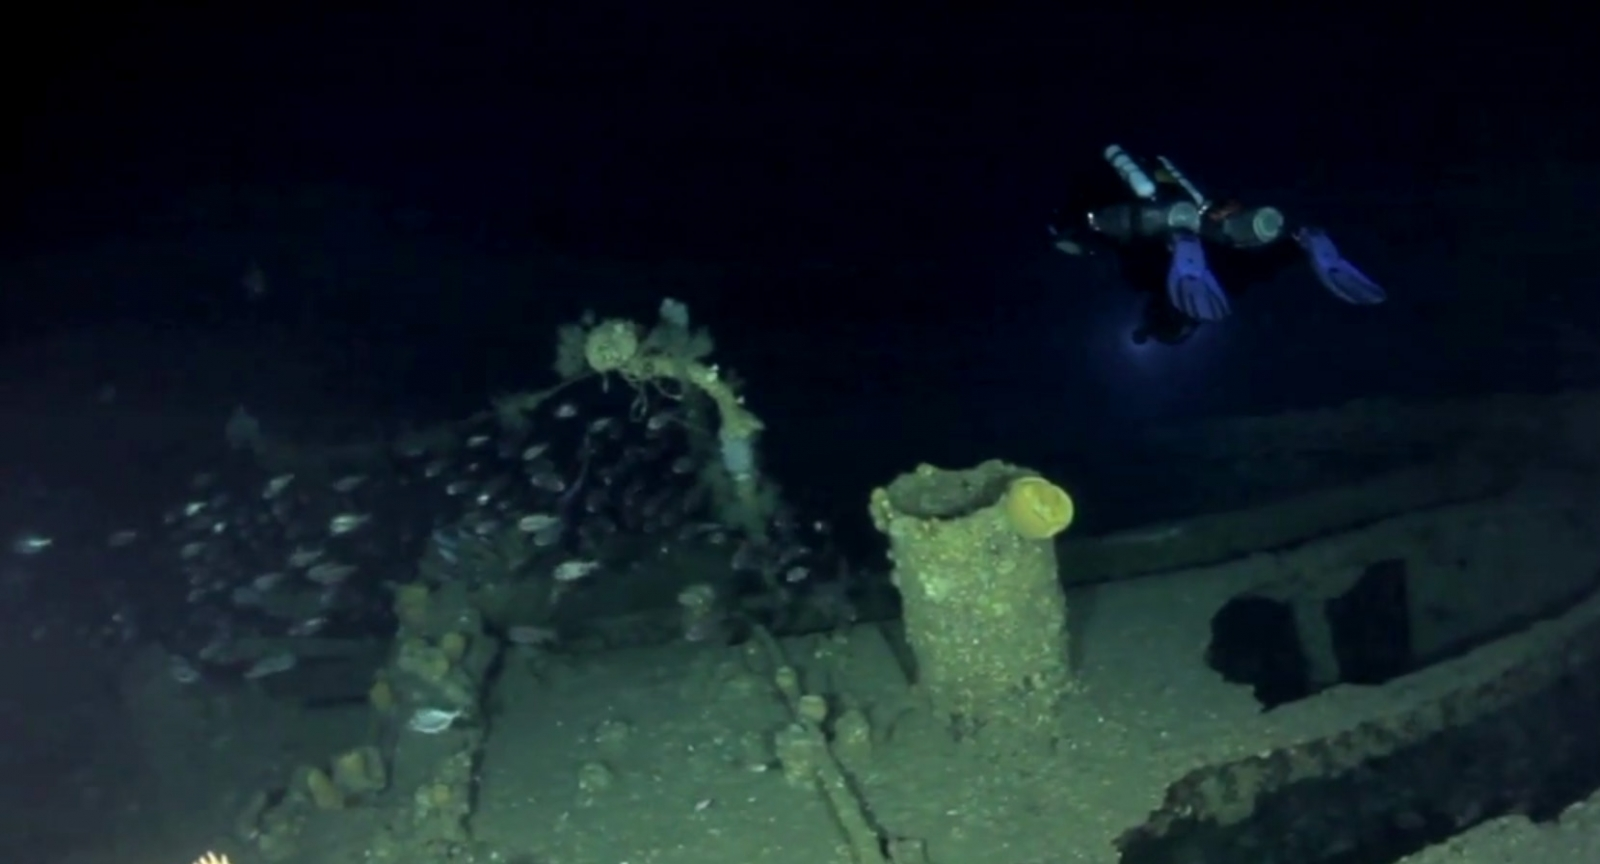 Divers explore the shipwreck of the SS Ventnor near Whangarei in New Zealand